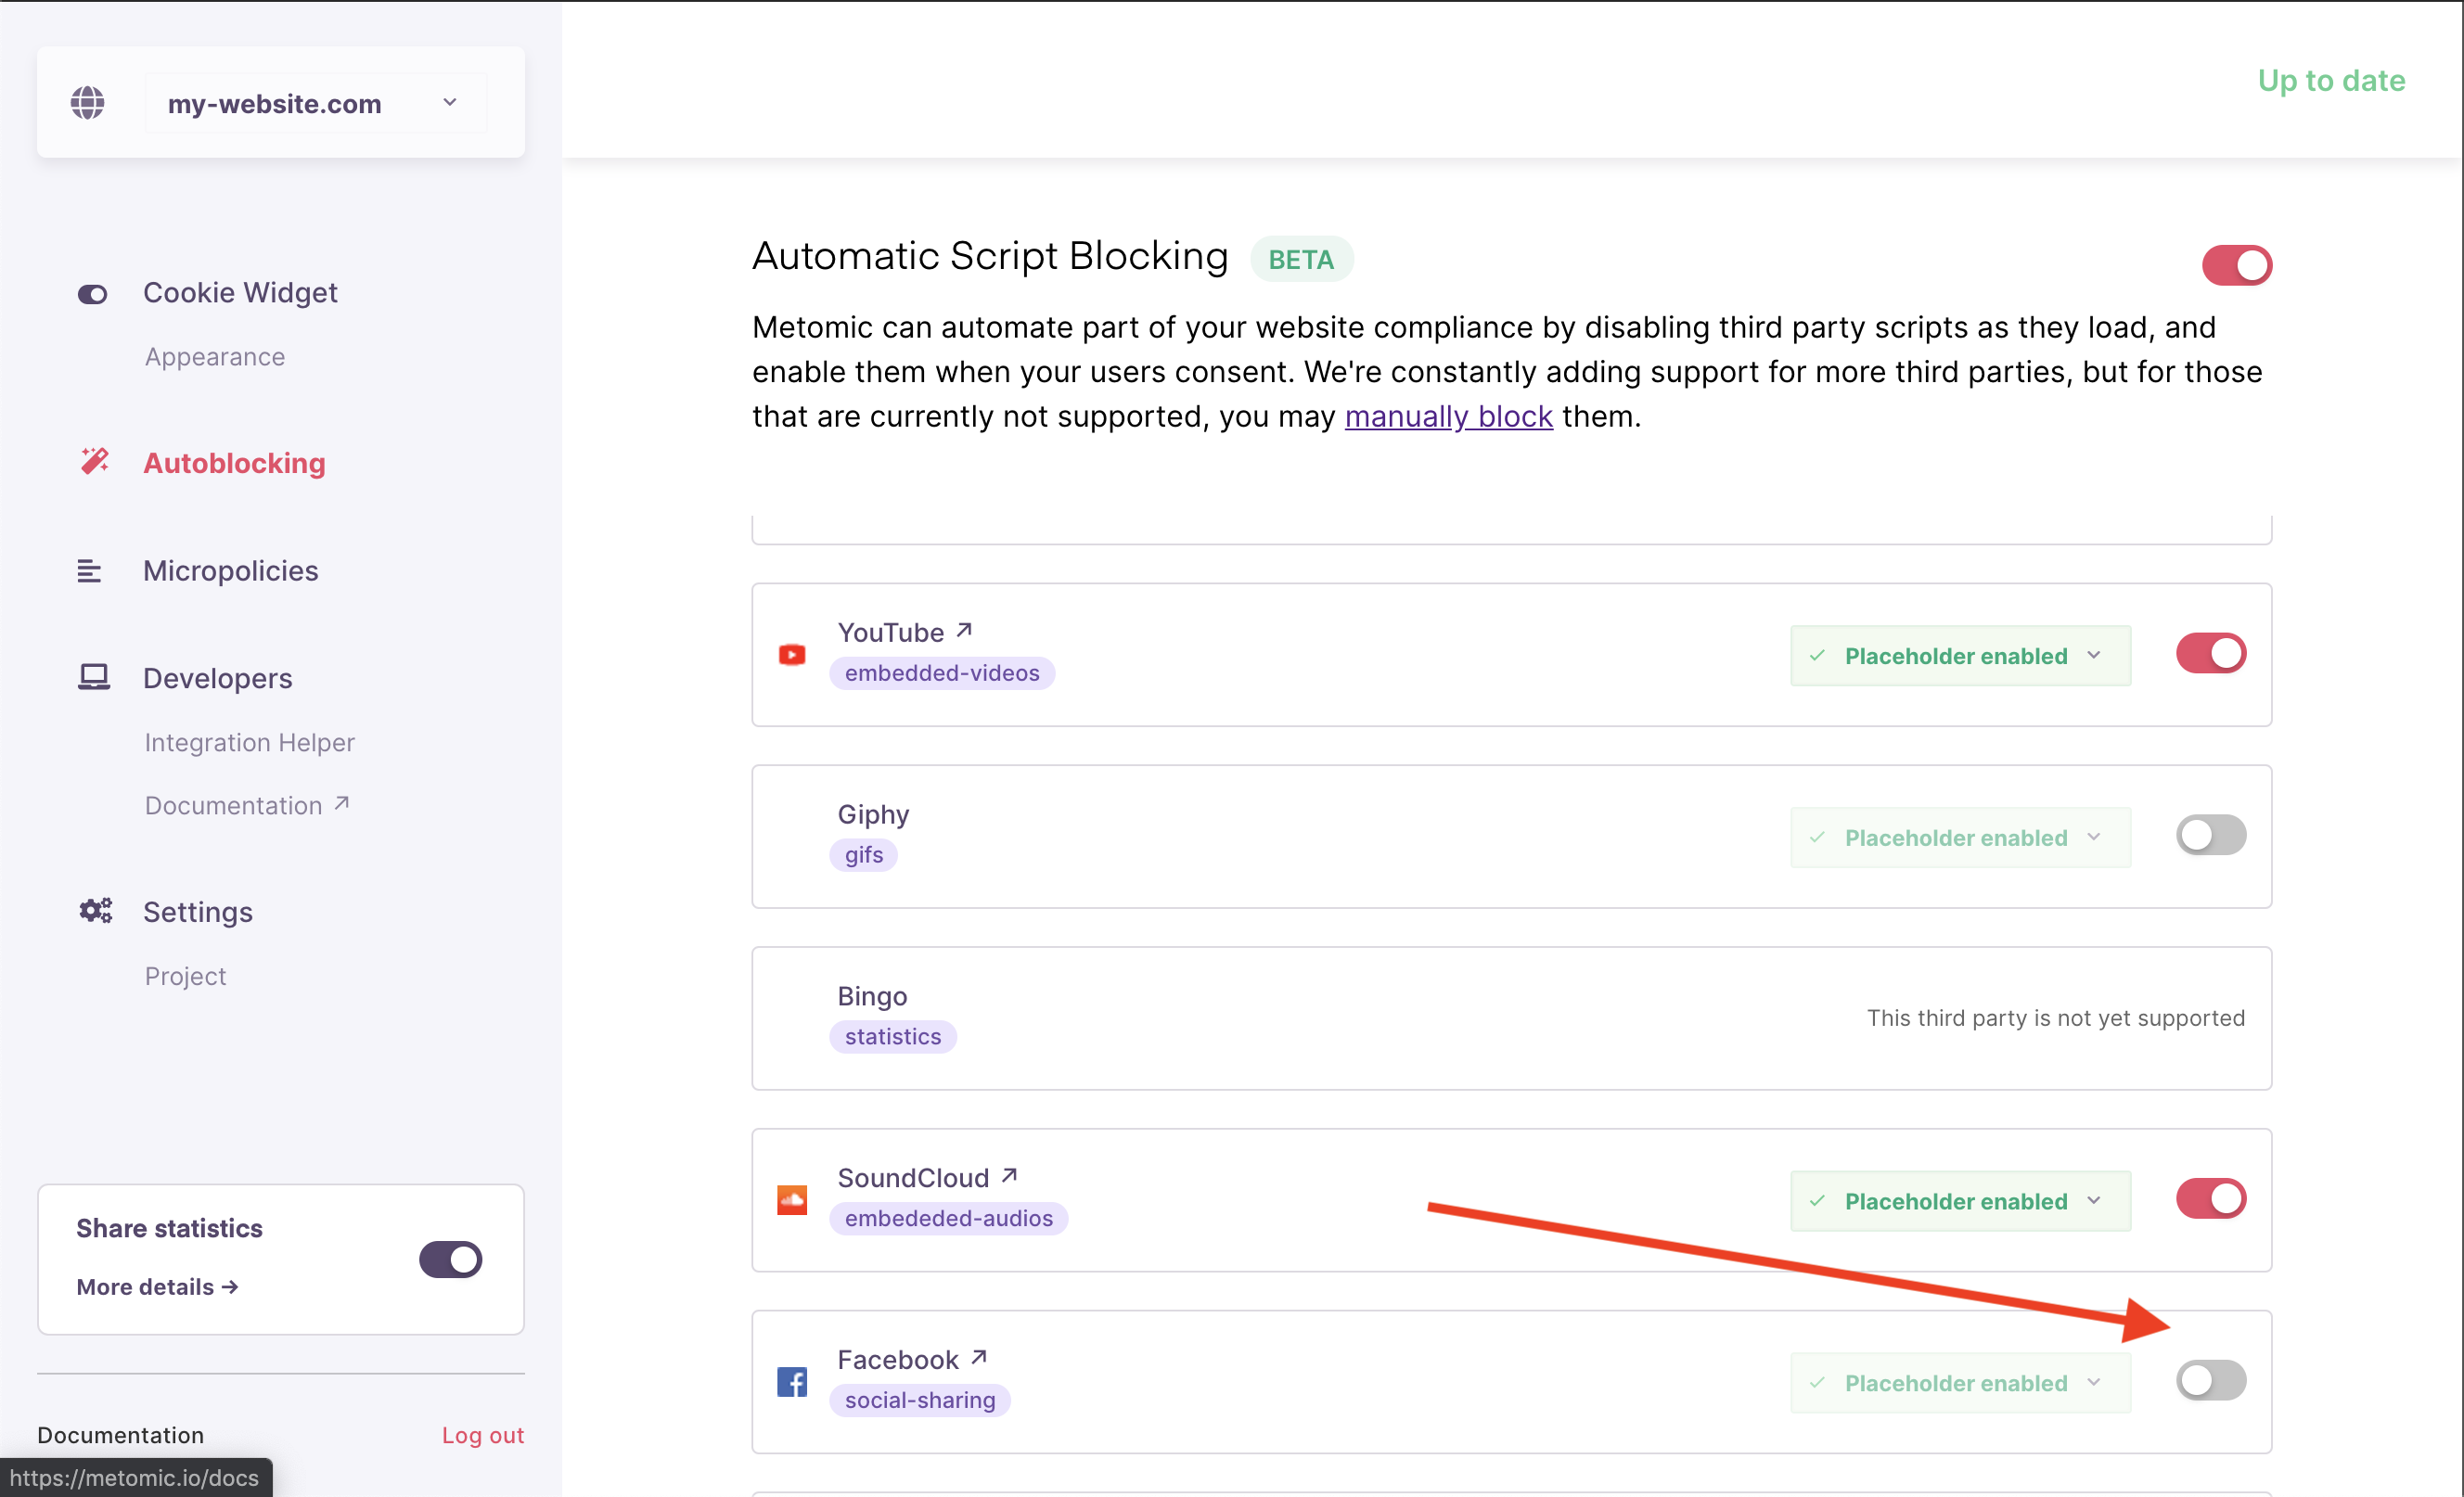 Step 3: Ensure that the autoblocking setting for that specific third party is enabled.